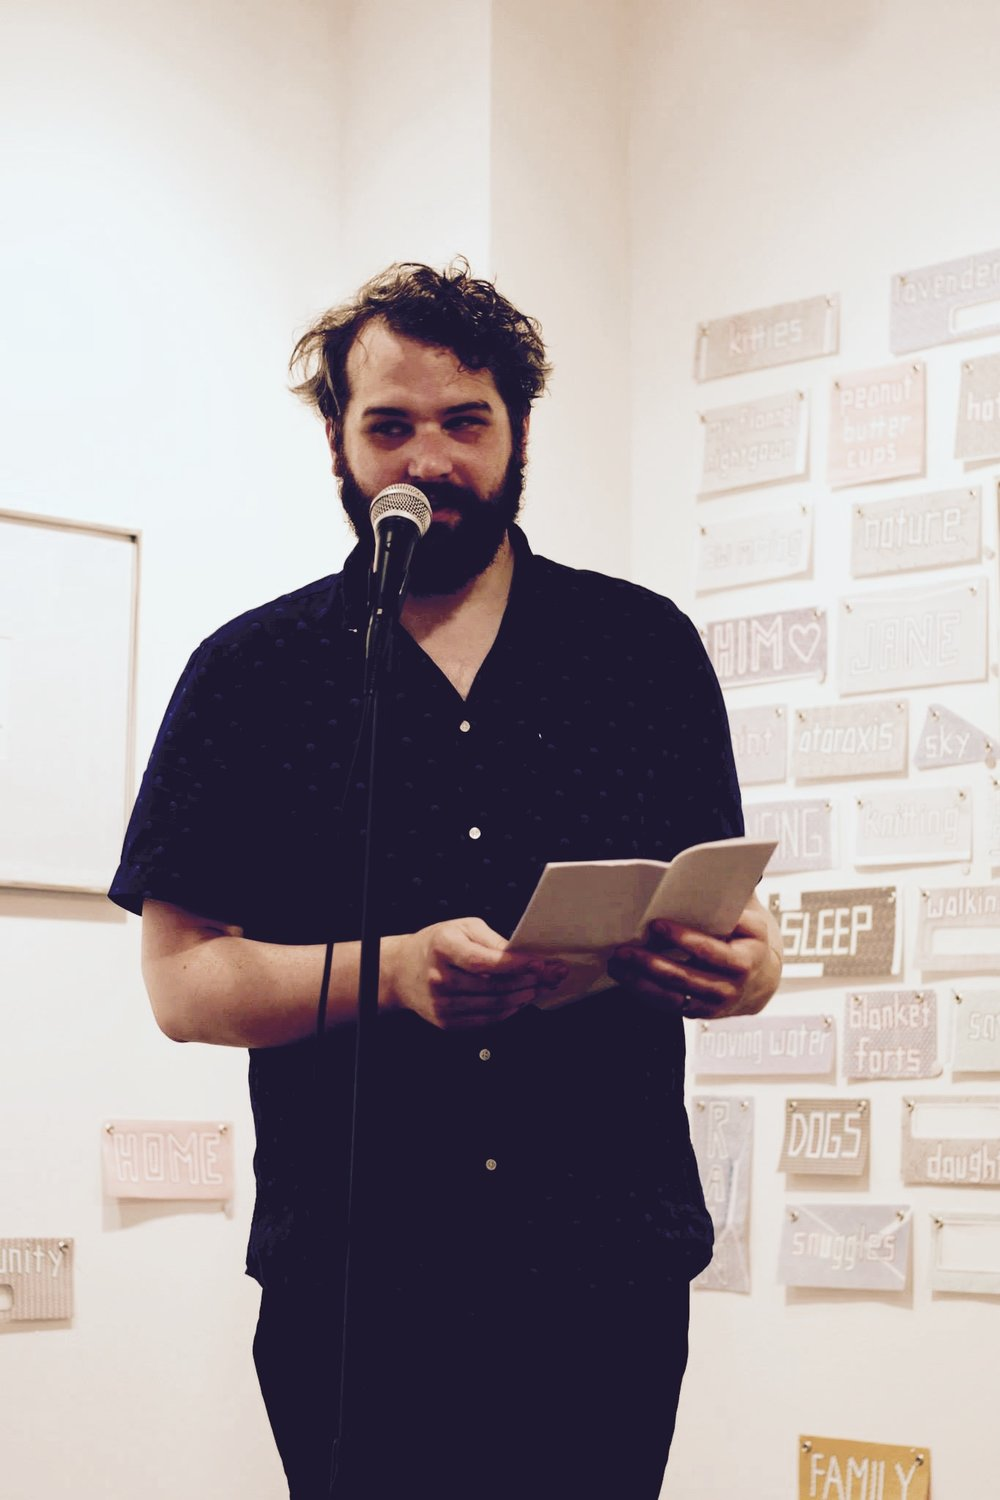 Patrick Blagrave kicking off the Copy/Body-Empty Set Press Launch Party @ Paradigm Gallery. 6/17/2017